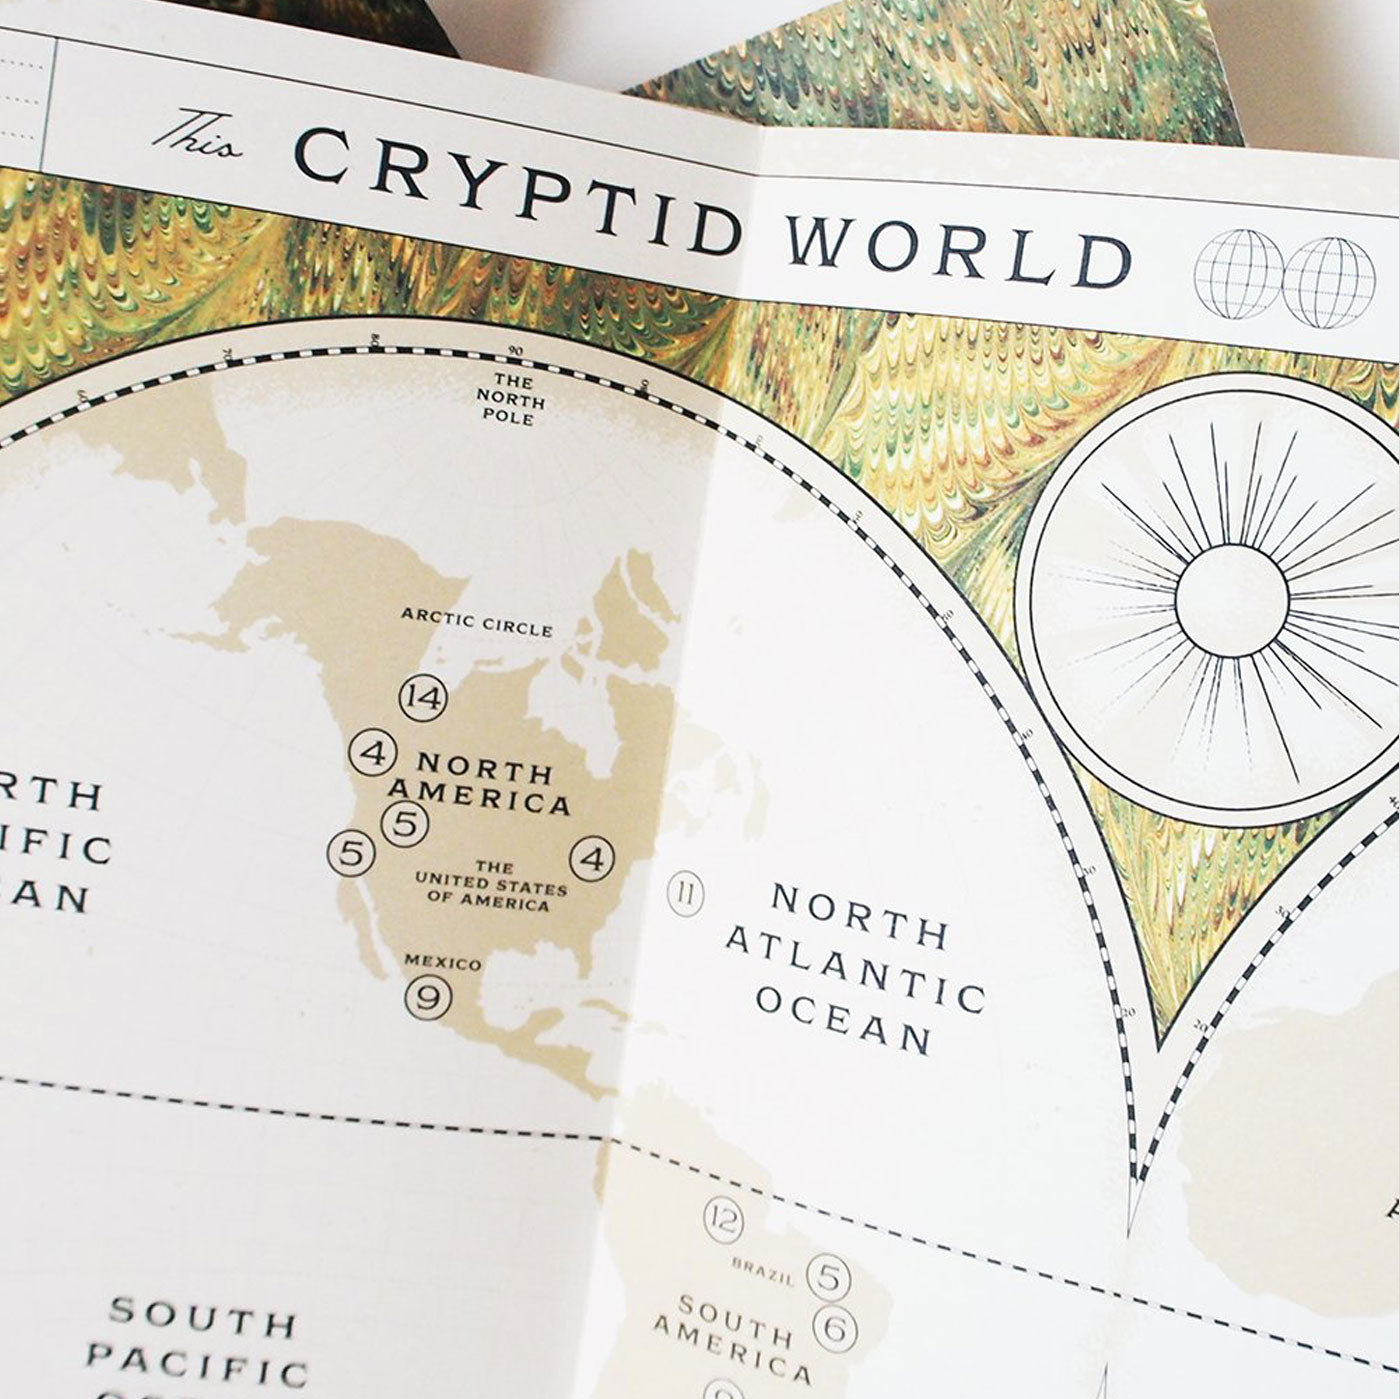 The Cryptid World: A Global Survey Of Undiscovered Beasts